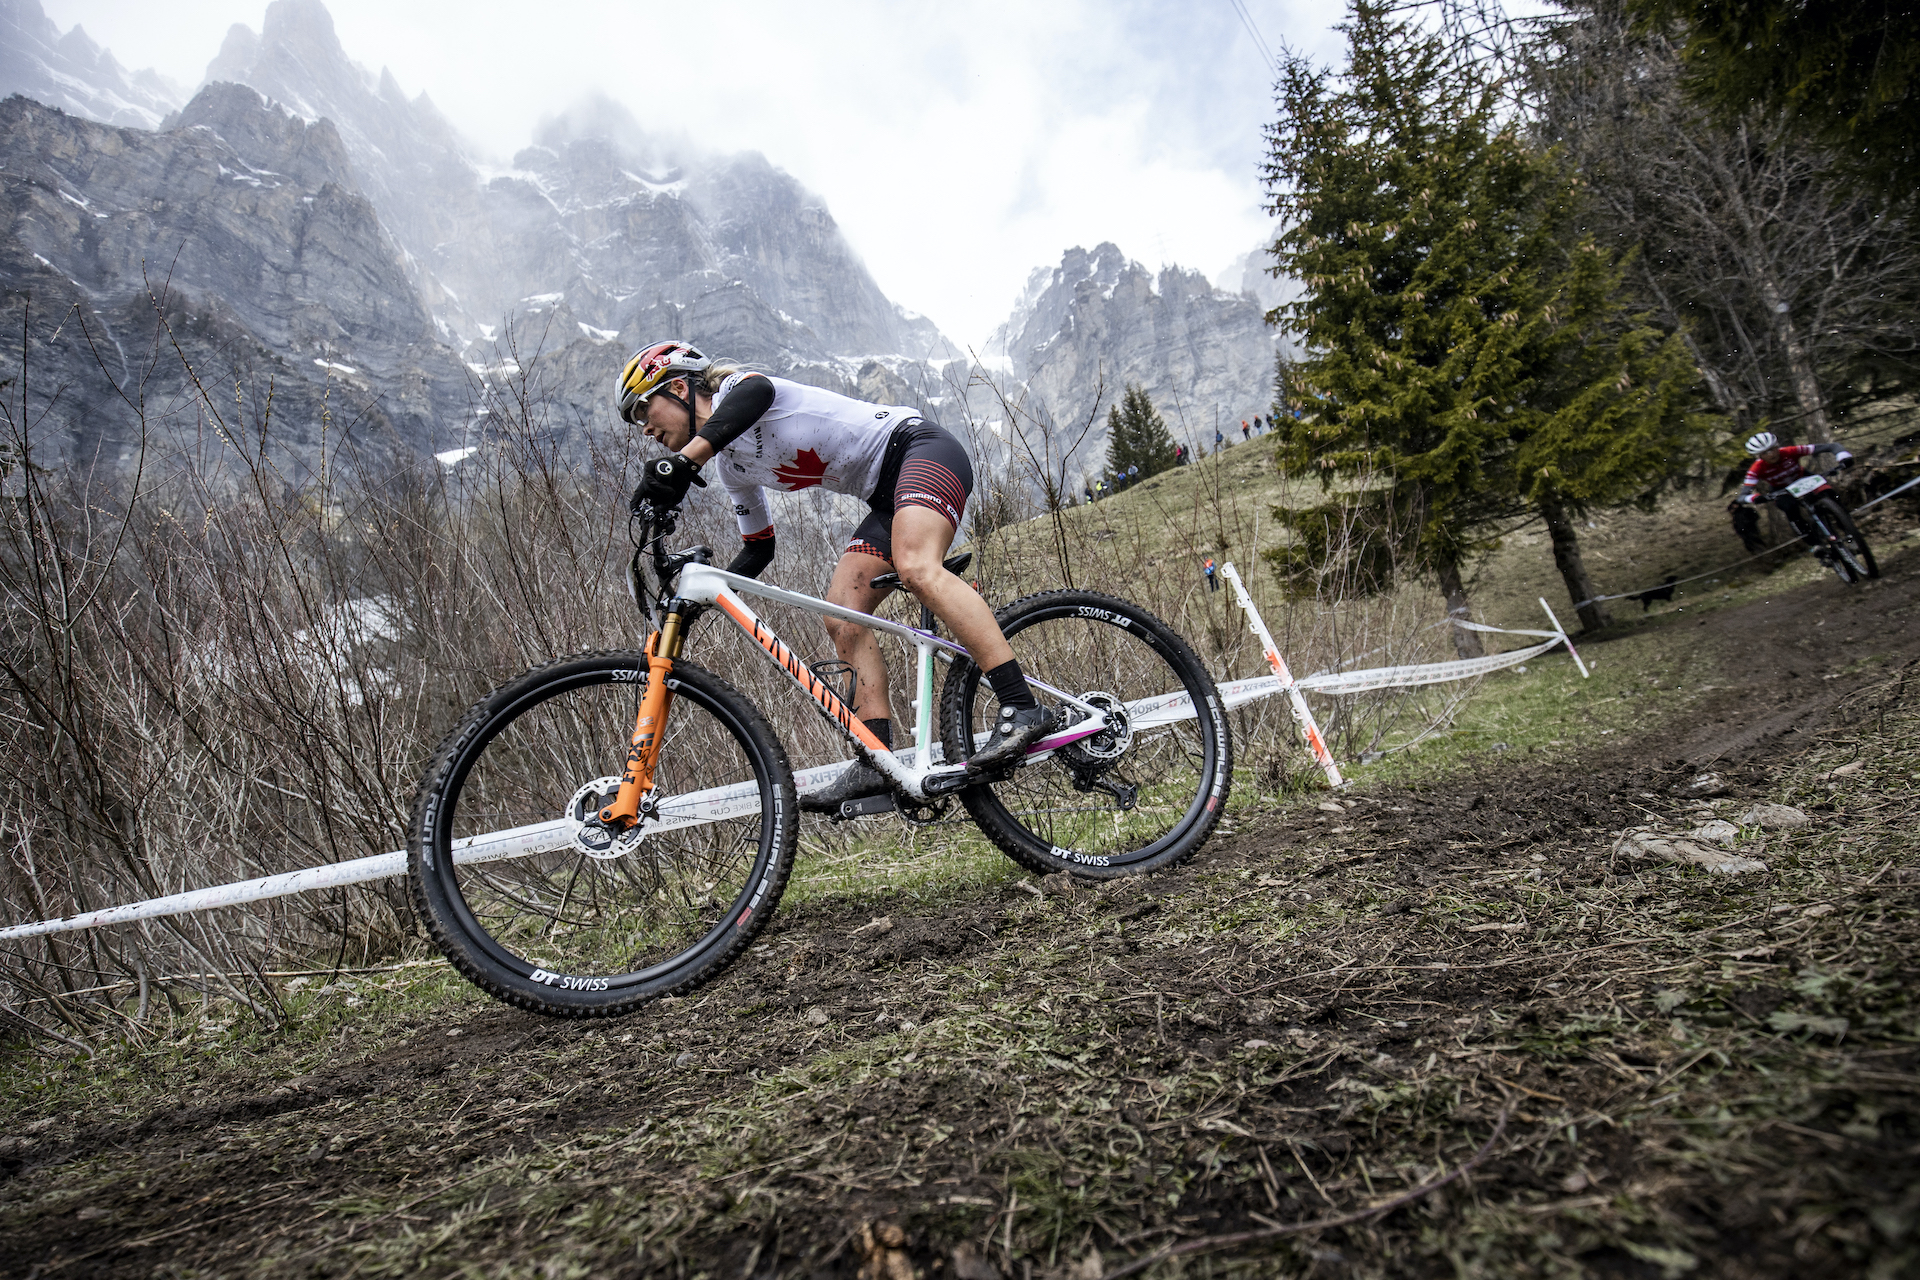 Canyon MTB Racing Launch with Swiss Mountain Bike Cup in Leukerbad Switzerland